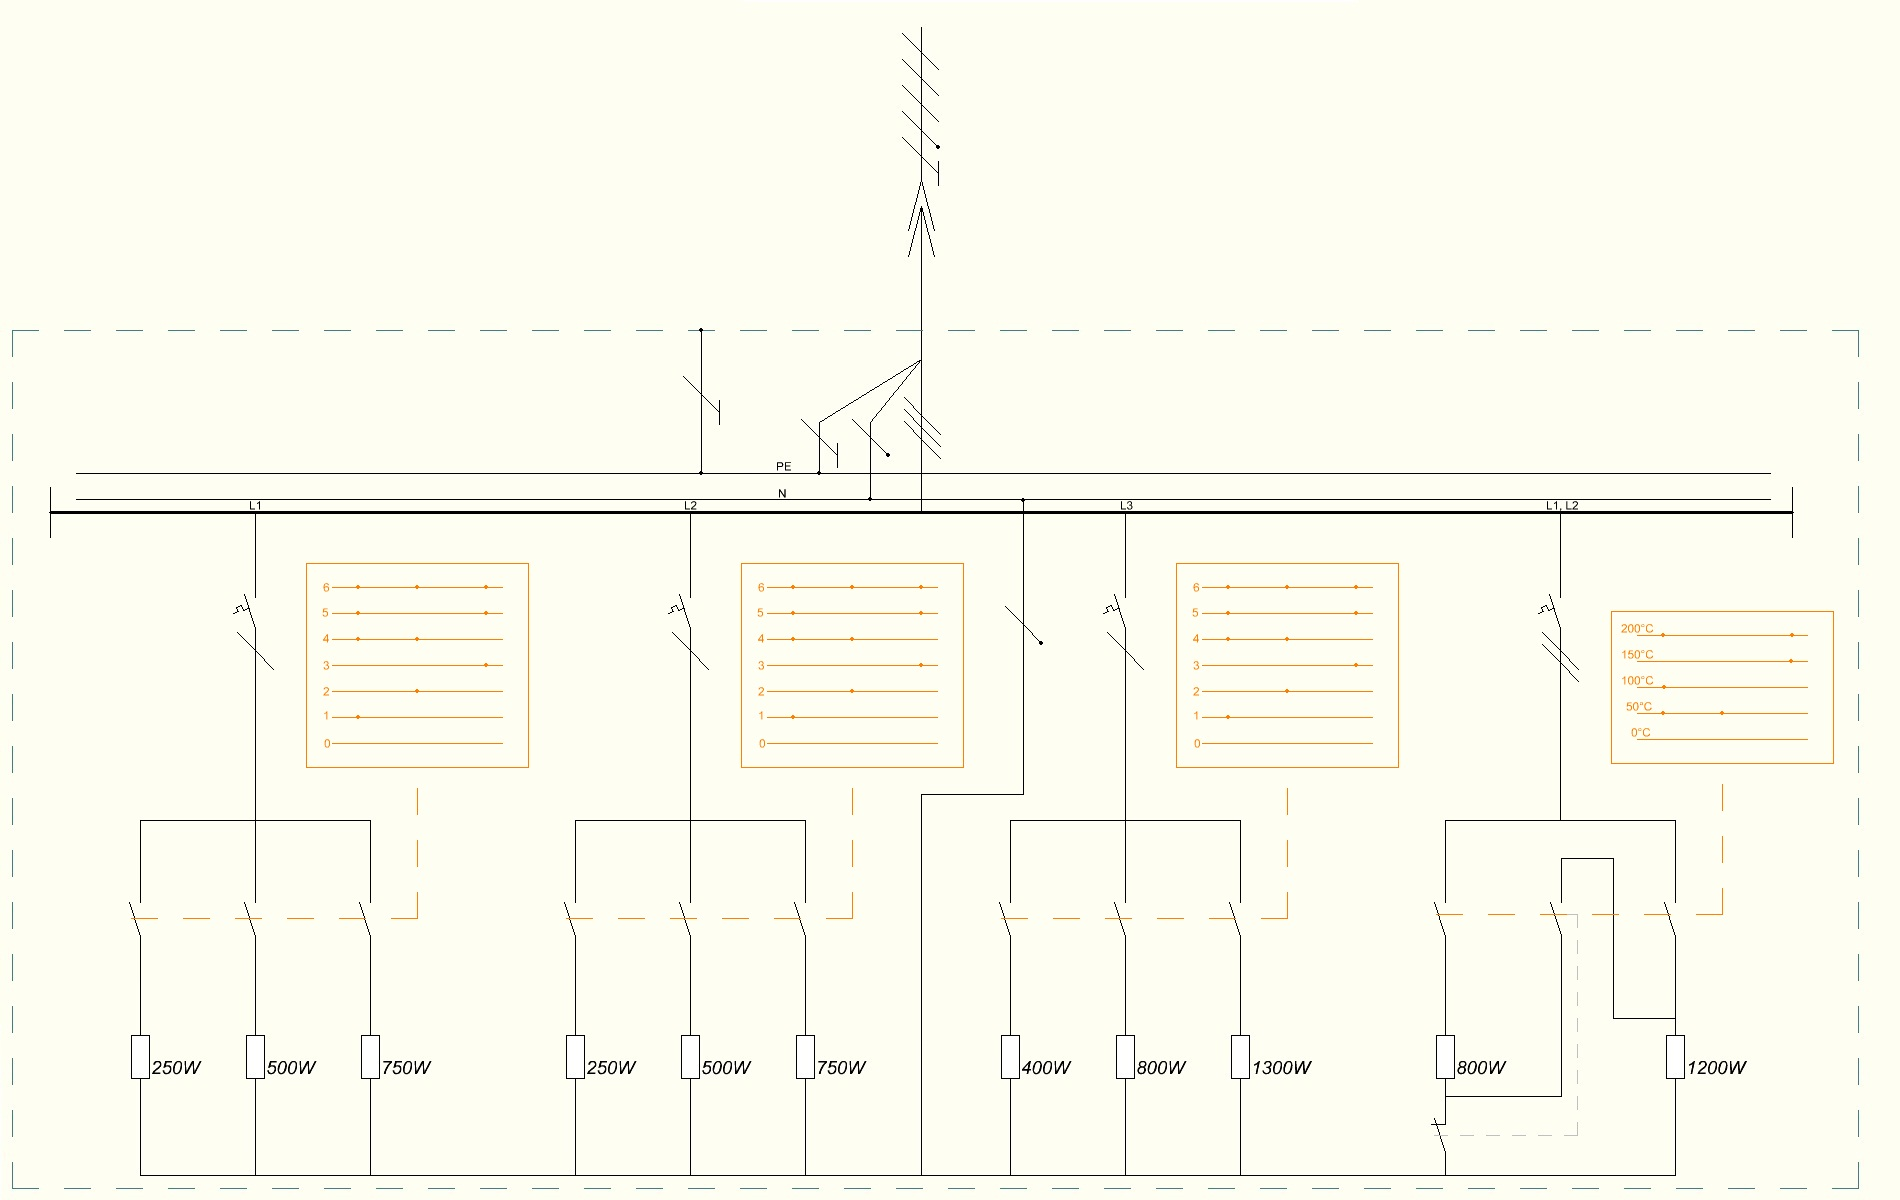 hight resolution of file schematic wiring diagram of electrical stove jpg wikimedia wiring diagram for electric stove outlet wiring diagram for electric range